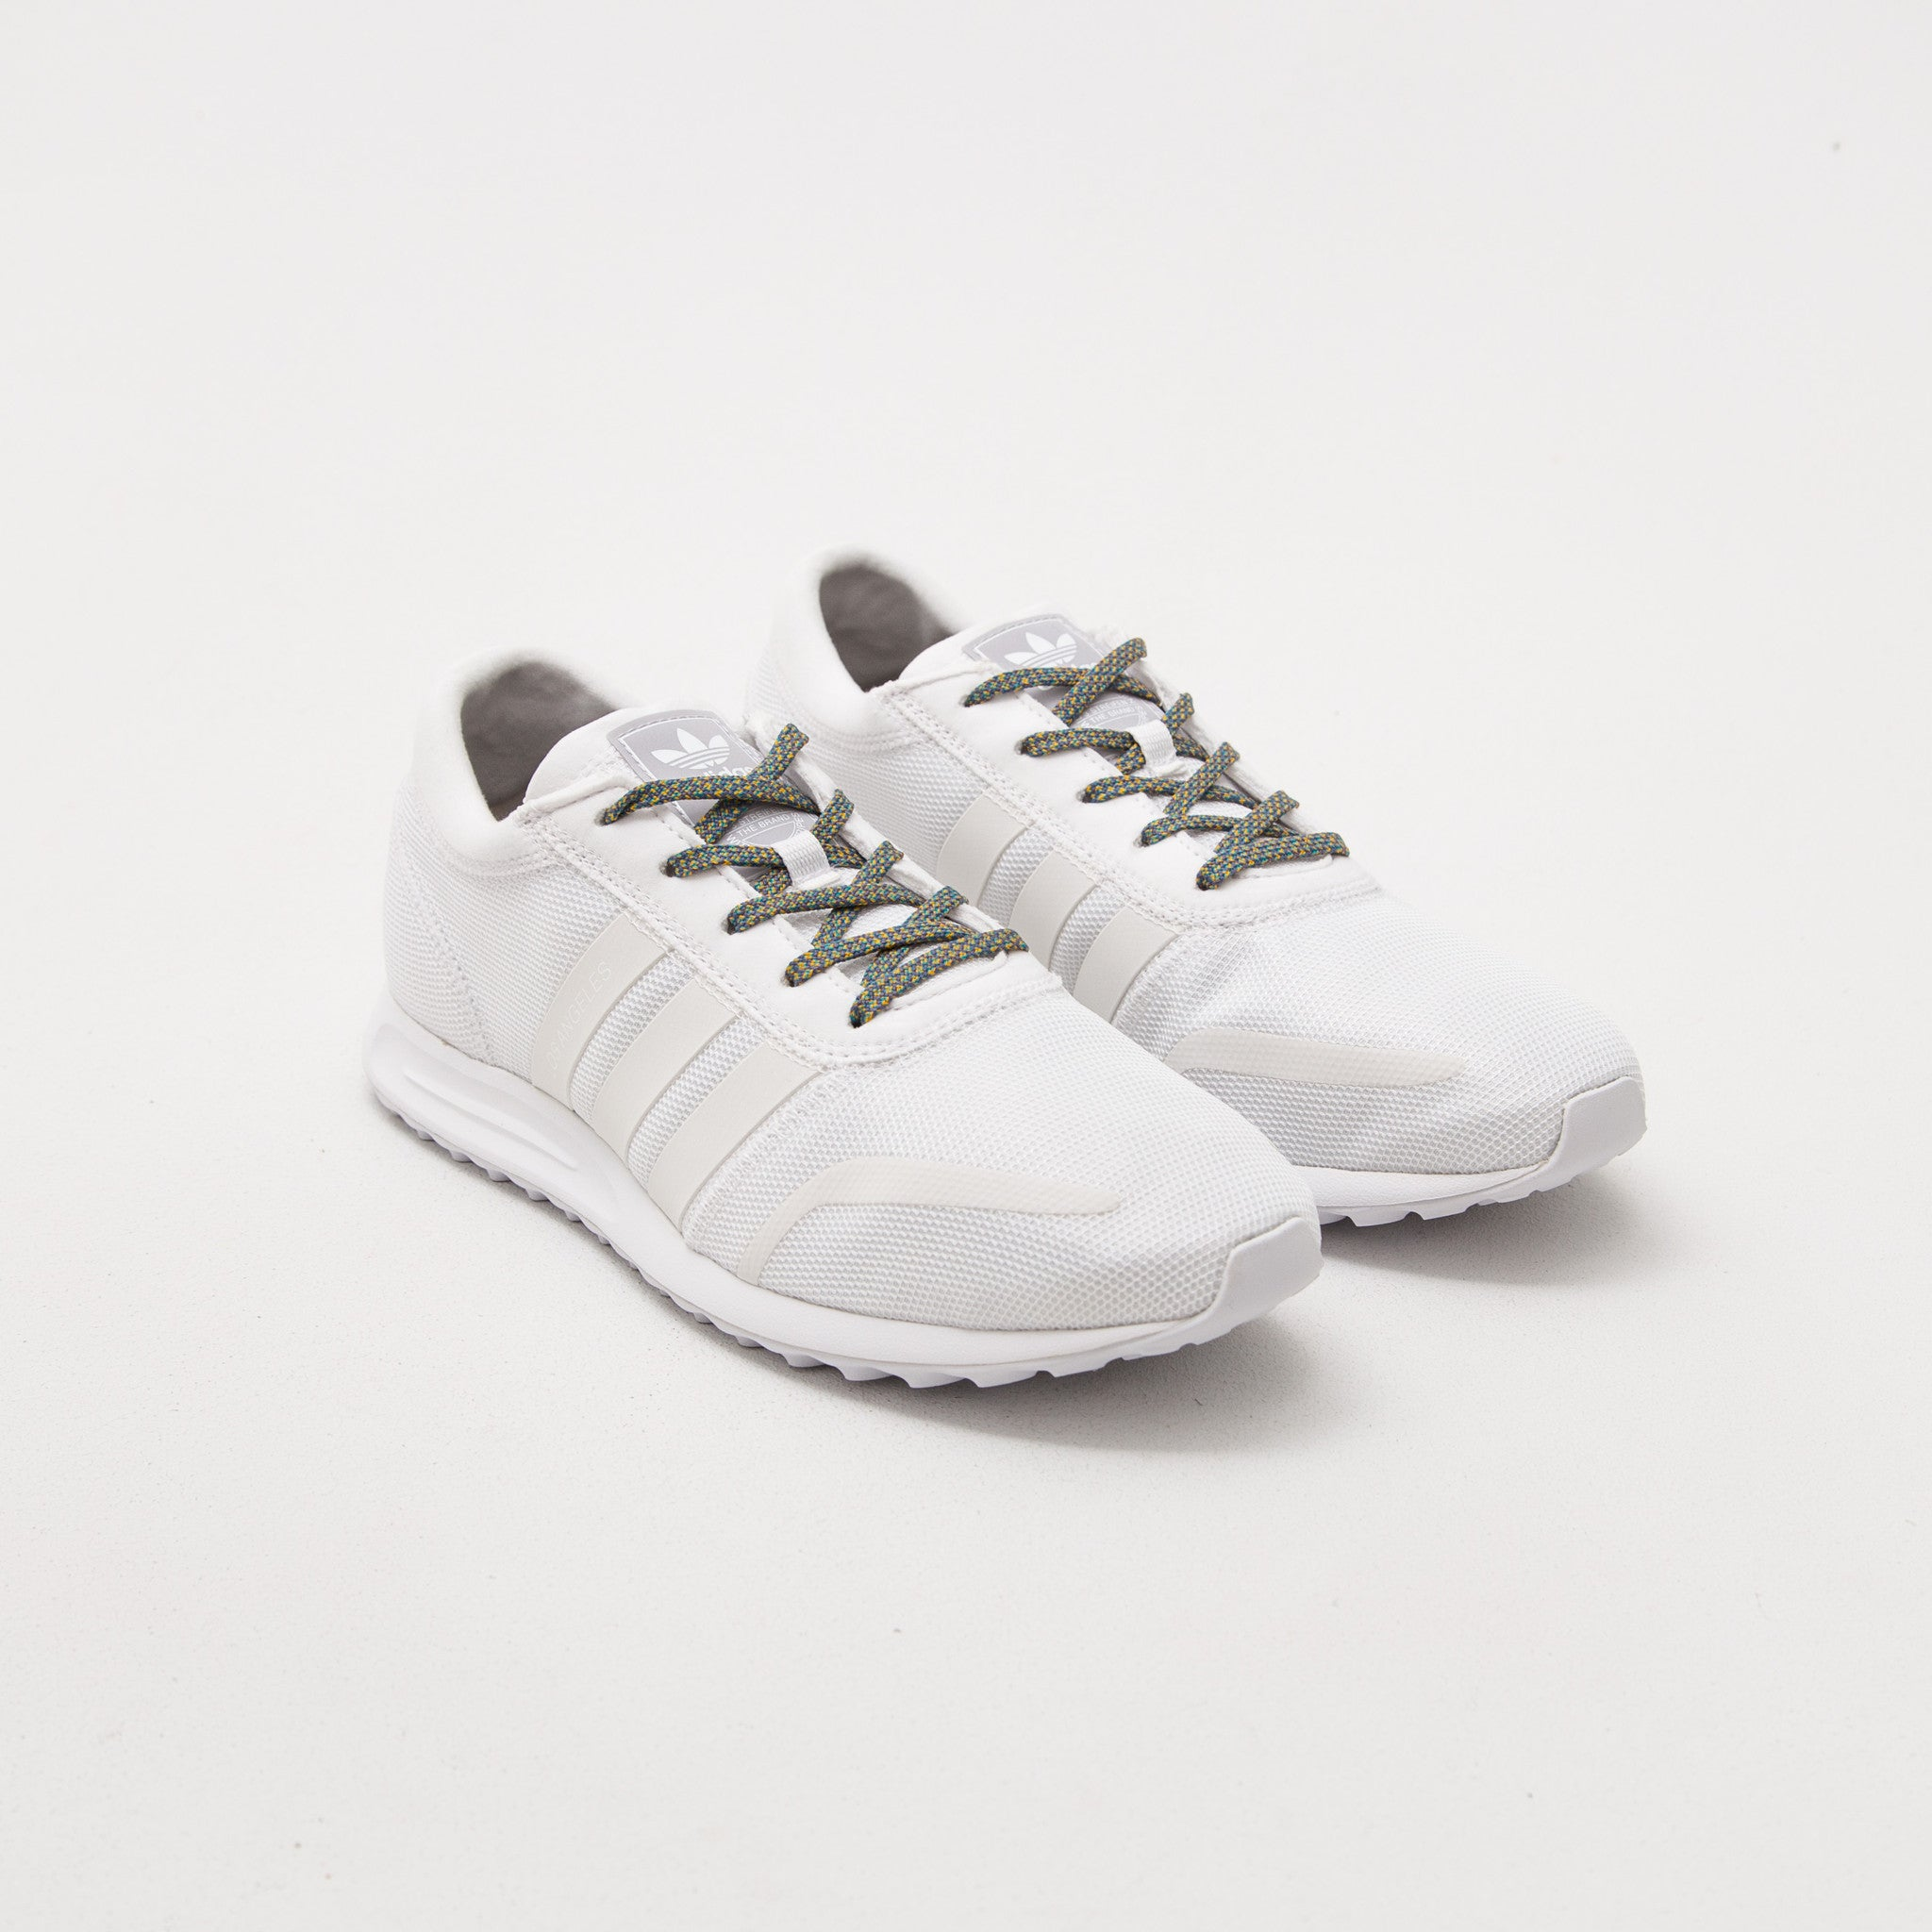 Los Angeles -  Ftwr White / Ftwr White / Lgh Solid Grey